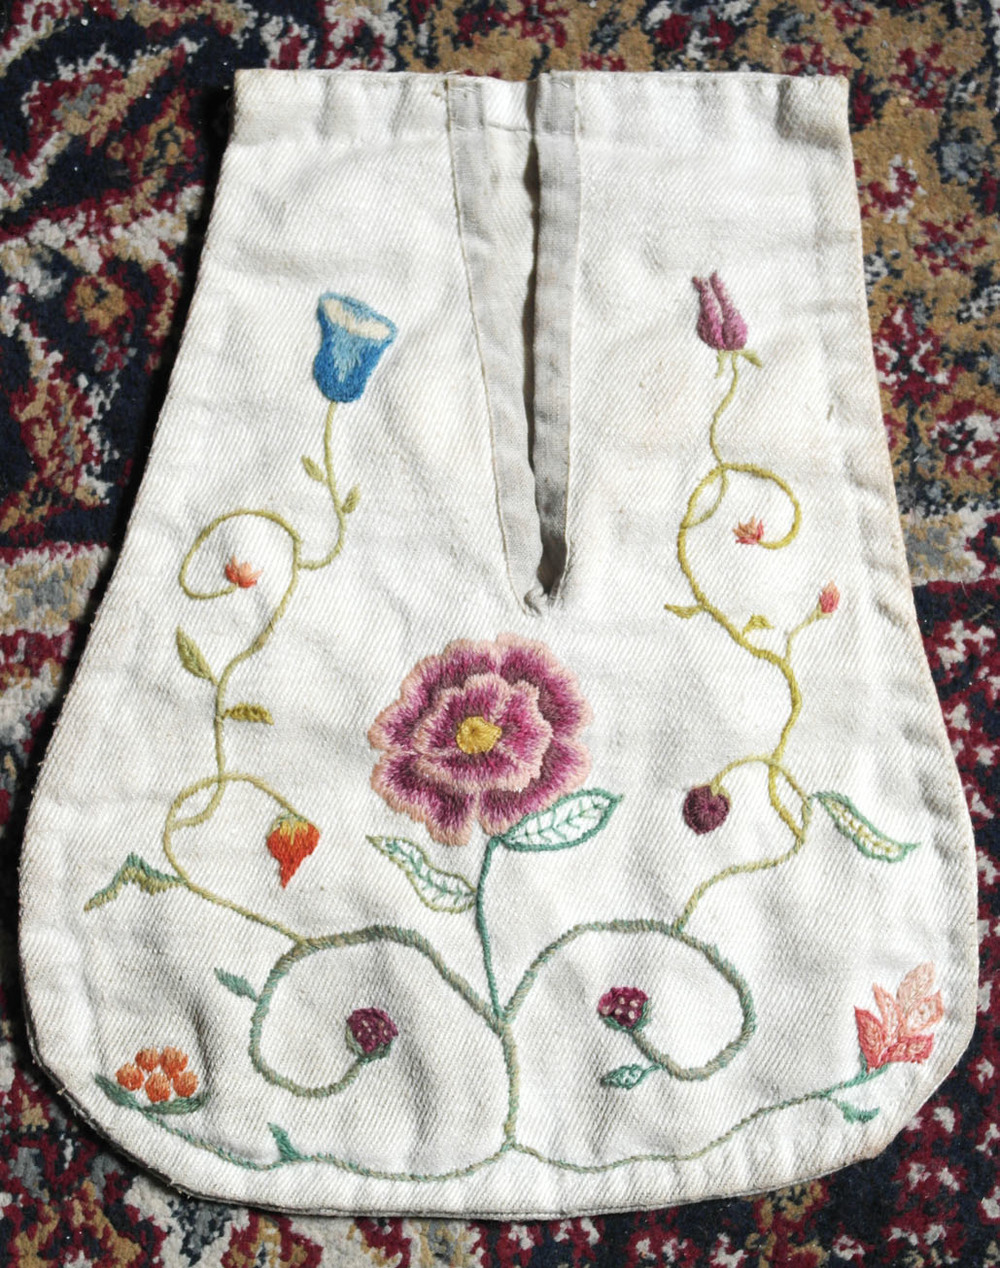 An shot of a reproduction 18th century embroidered pocket, by Aurora Simmons. Crewel wool on linen.